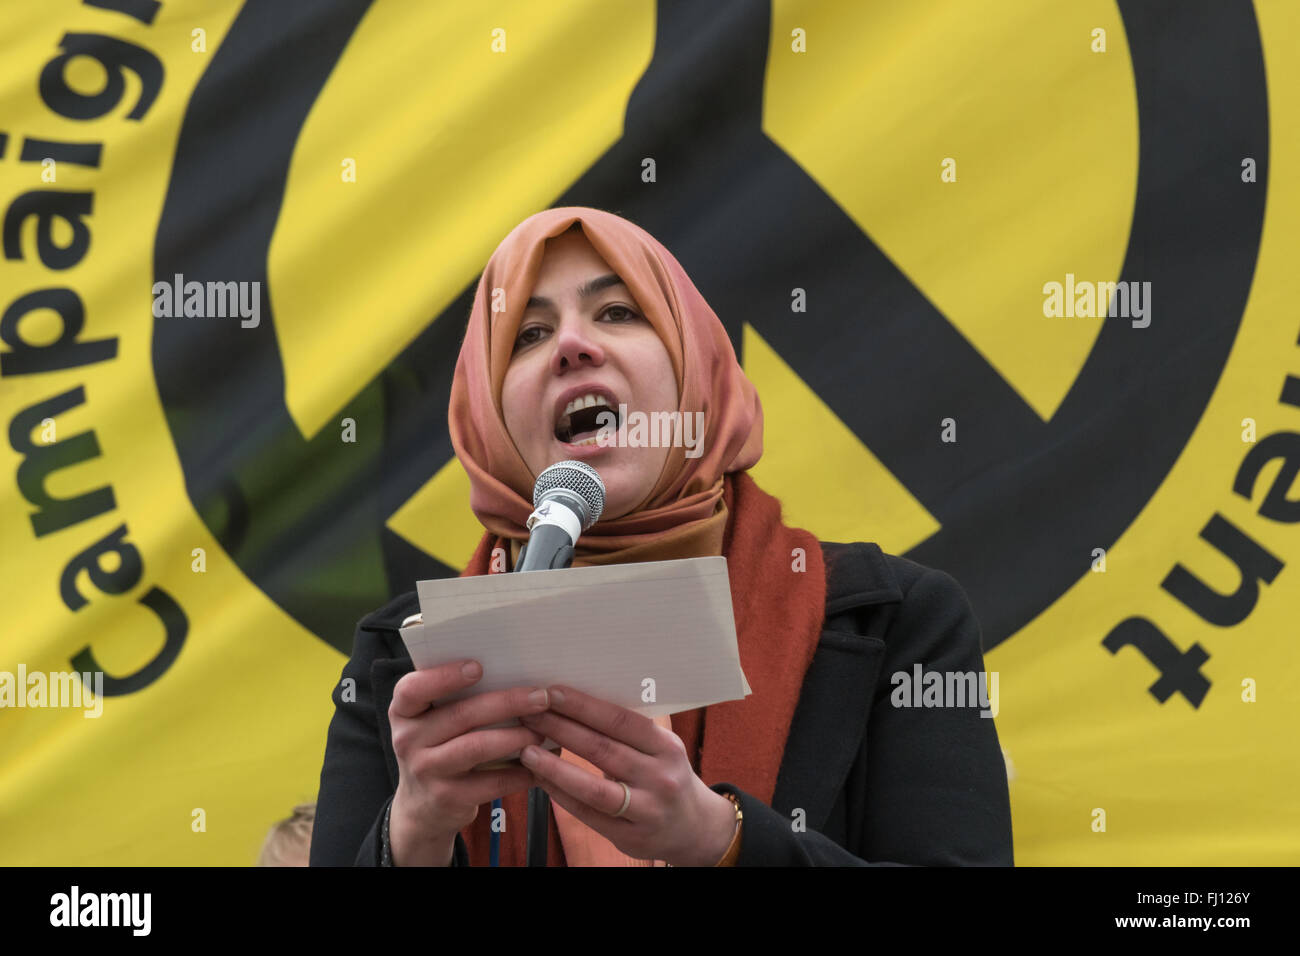 London, UK. 27th February 2016. Raghad Altikriti of the Muslim Association of Britain speaks at the rally opposed Stock Photo